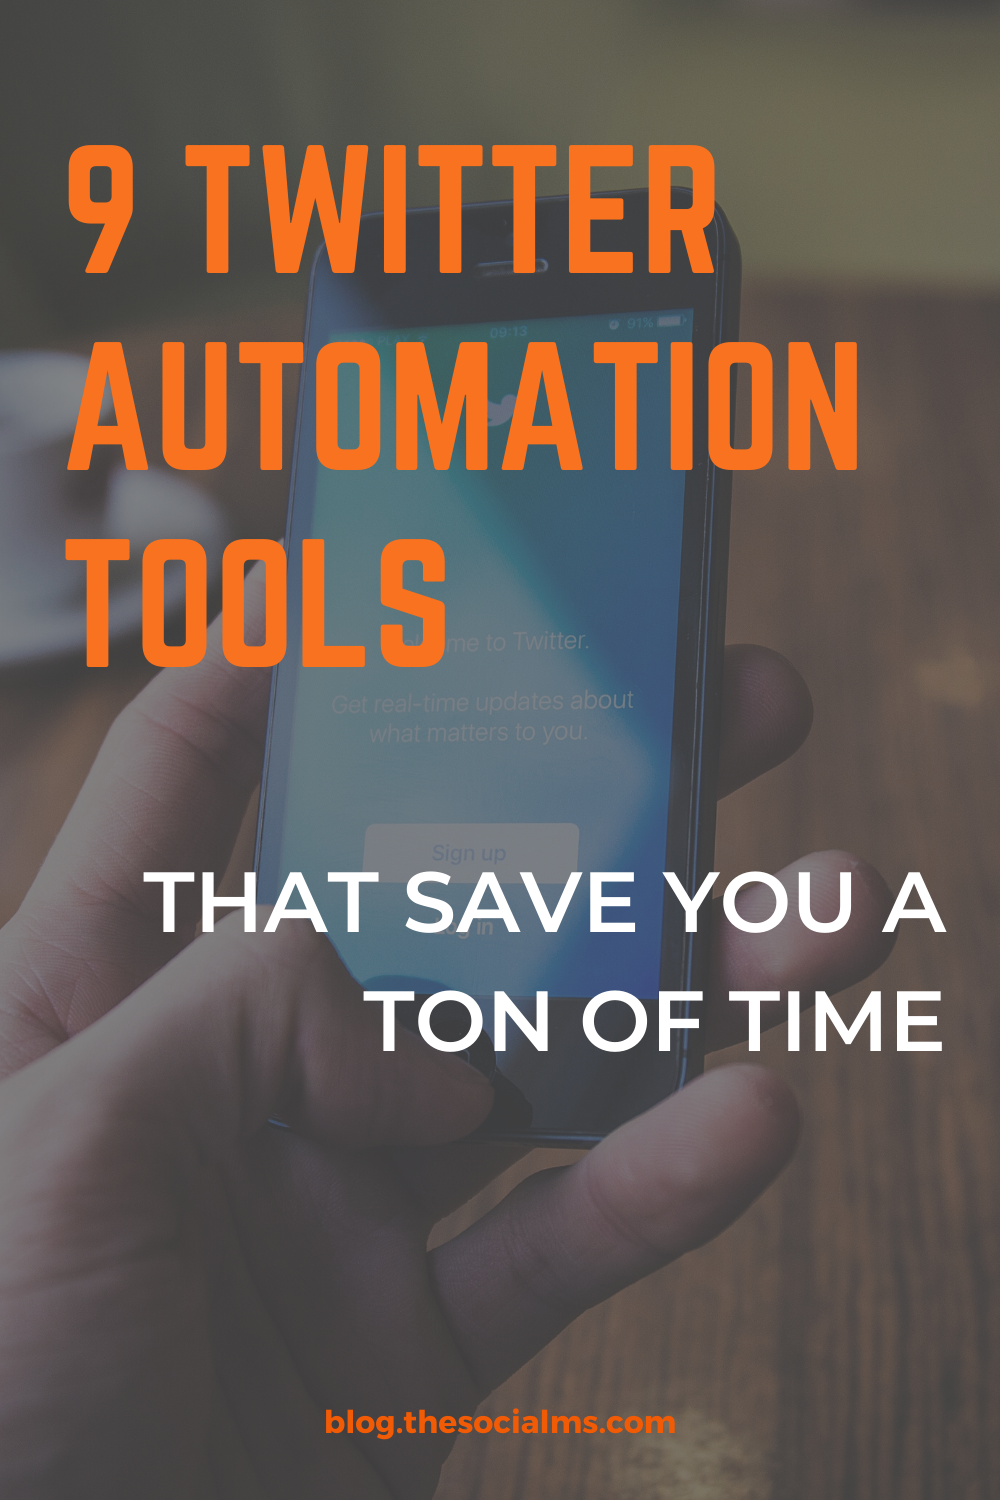 marketing often costs a ton of time. To keep your Twitter account active, open and responsive means that you invest a minimum of effort on a daily basis. You need the right Twitter automation tools to optimize your Twitter activity and see major Twitter marketing success. #twitter #twittermarketing #twittertips #socialmedia #socialmediamarketing #socialmediatips